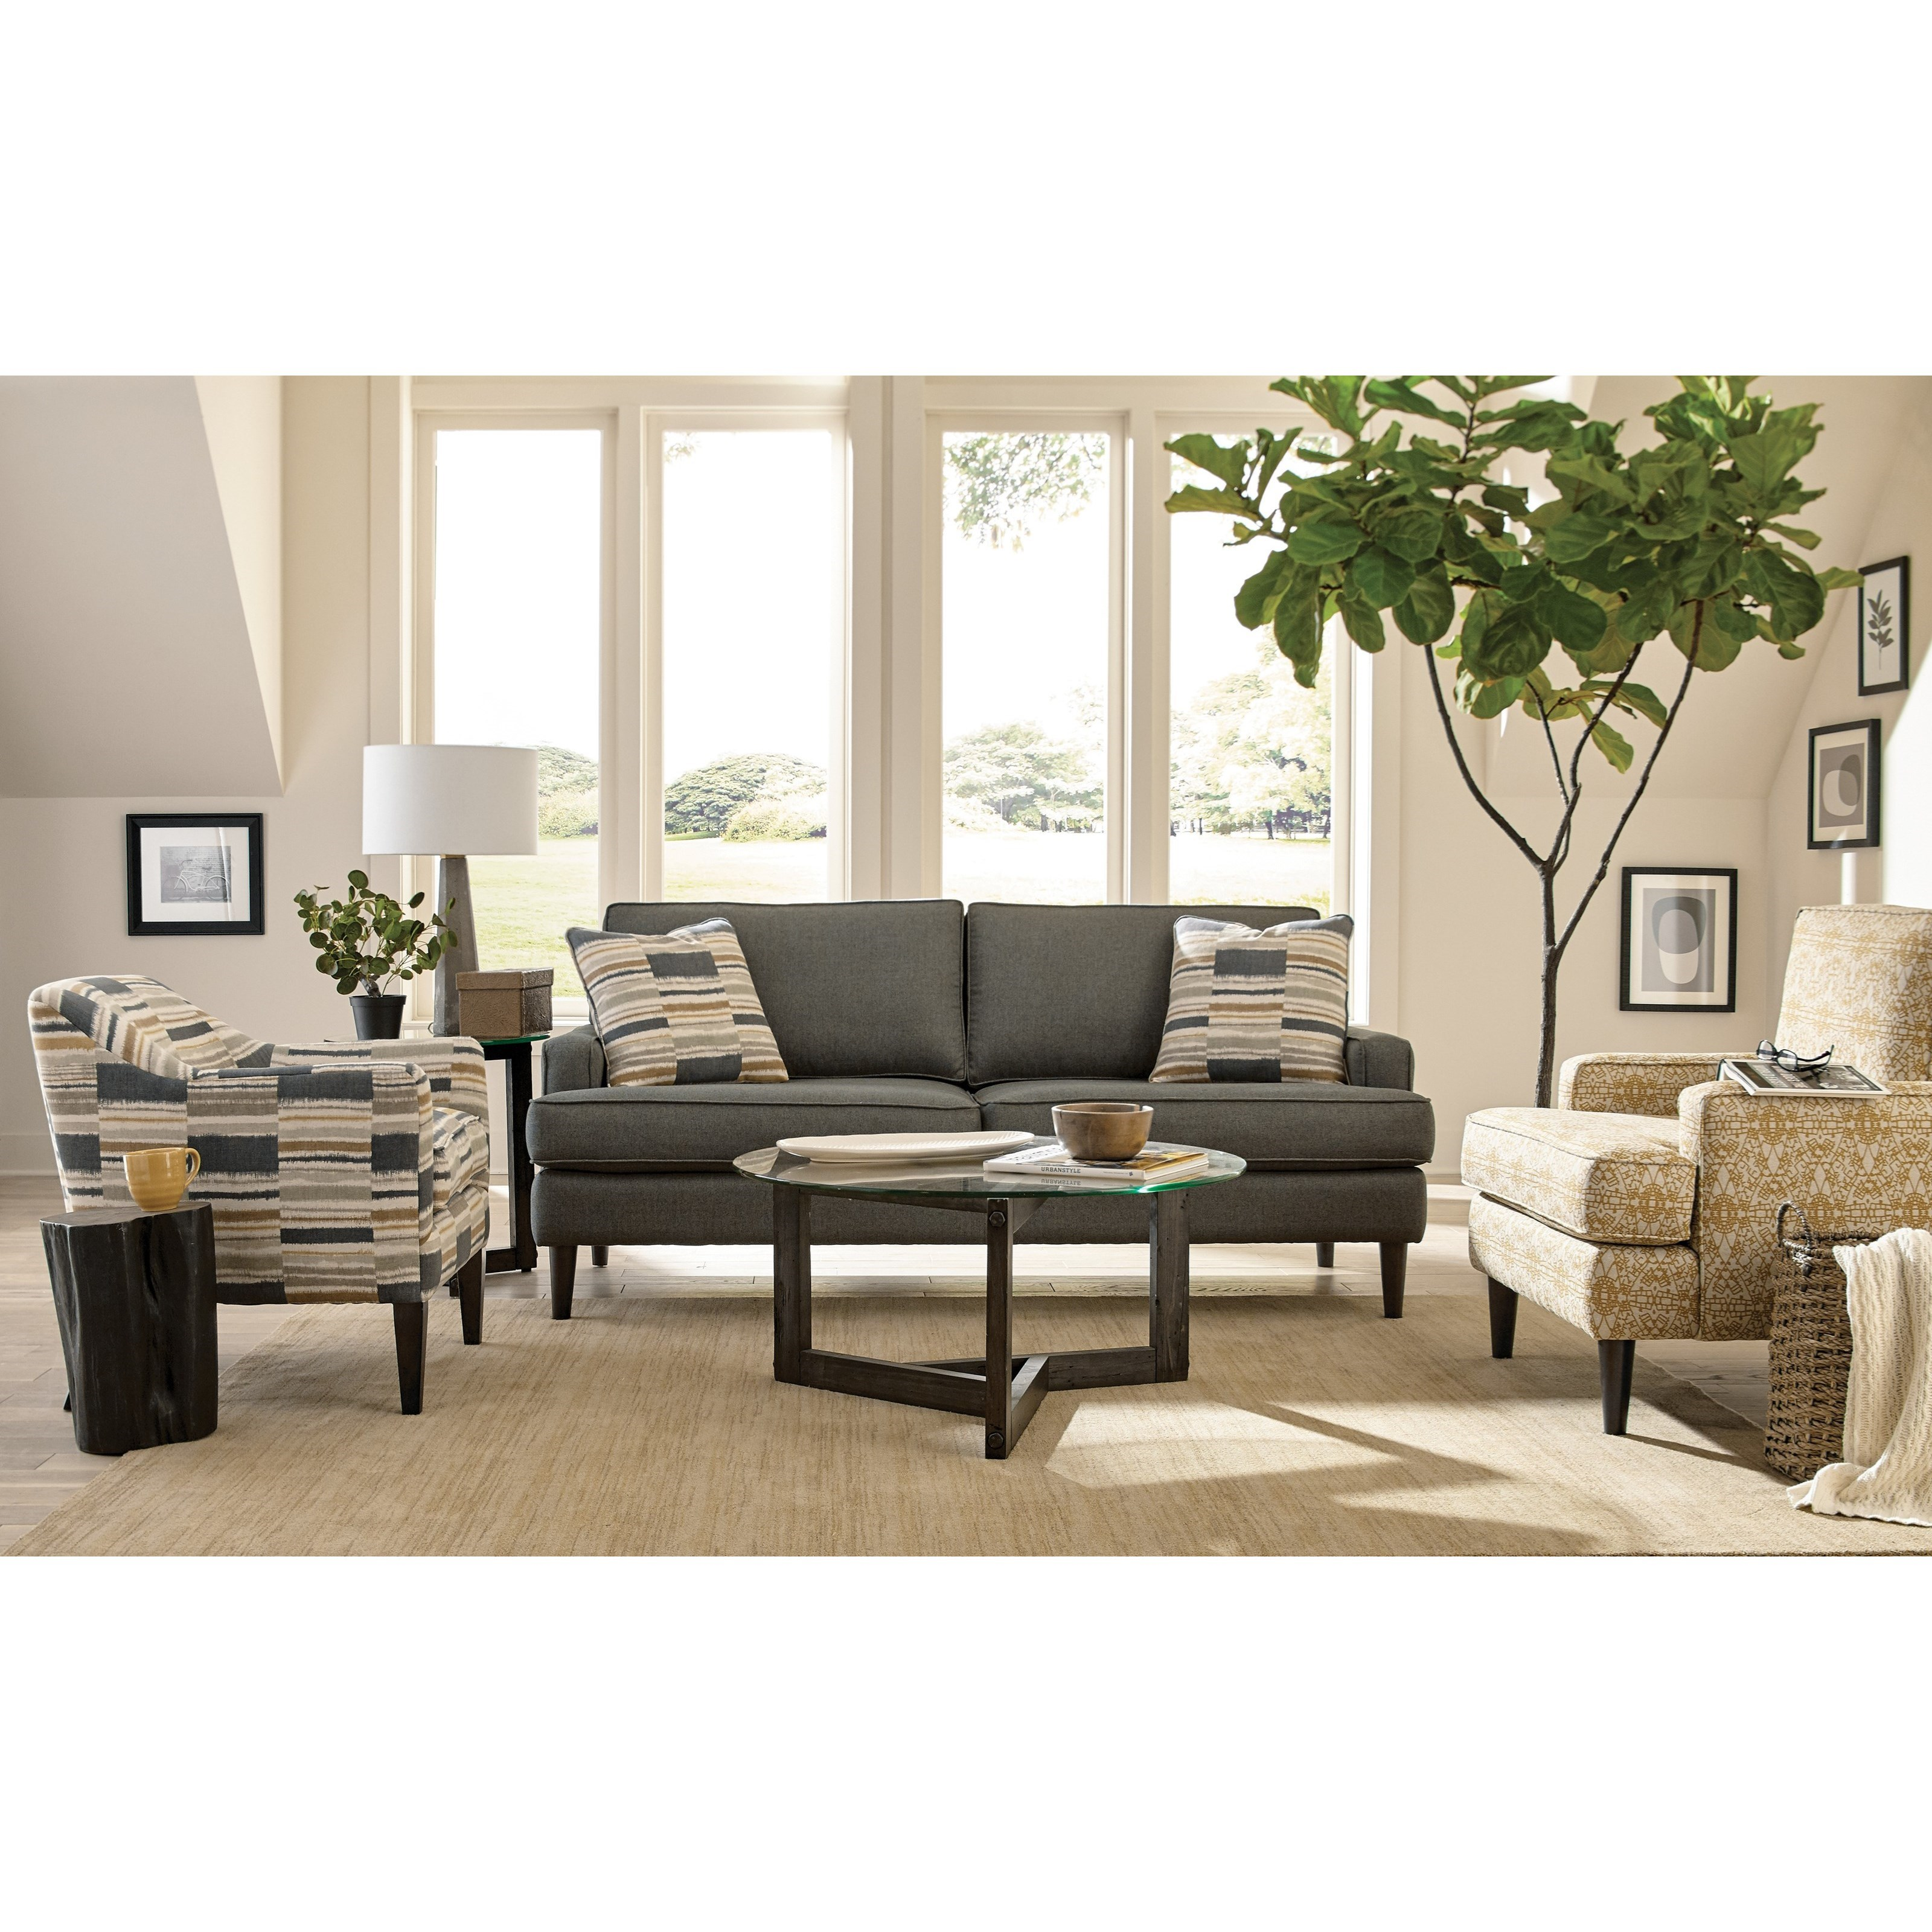 798250 Living Room Group by Craftmaster at Esprit Decor Home Furnishings